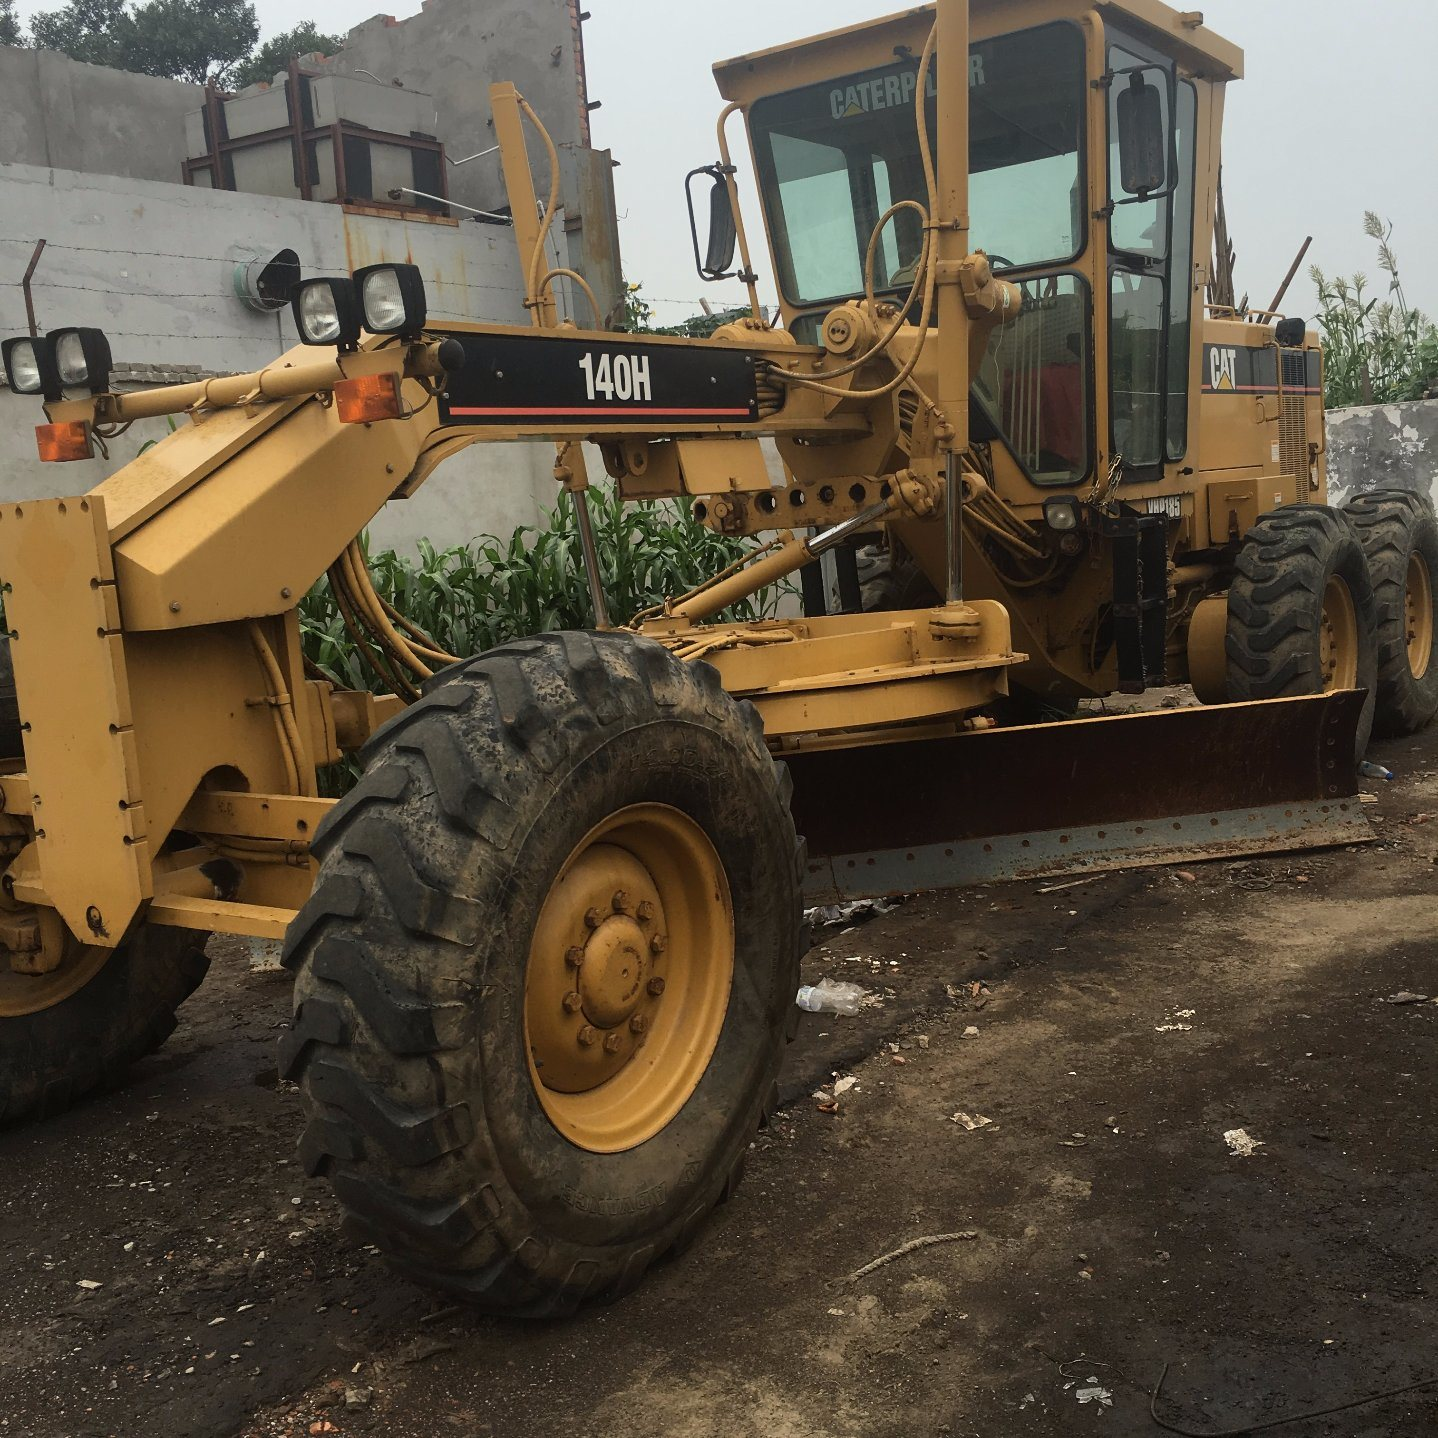 China Used/Secondhand Cat Grader 140h Caterpillar Grader 140g 140m for  Construction Original Machinery - China Grader, Cat 140h